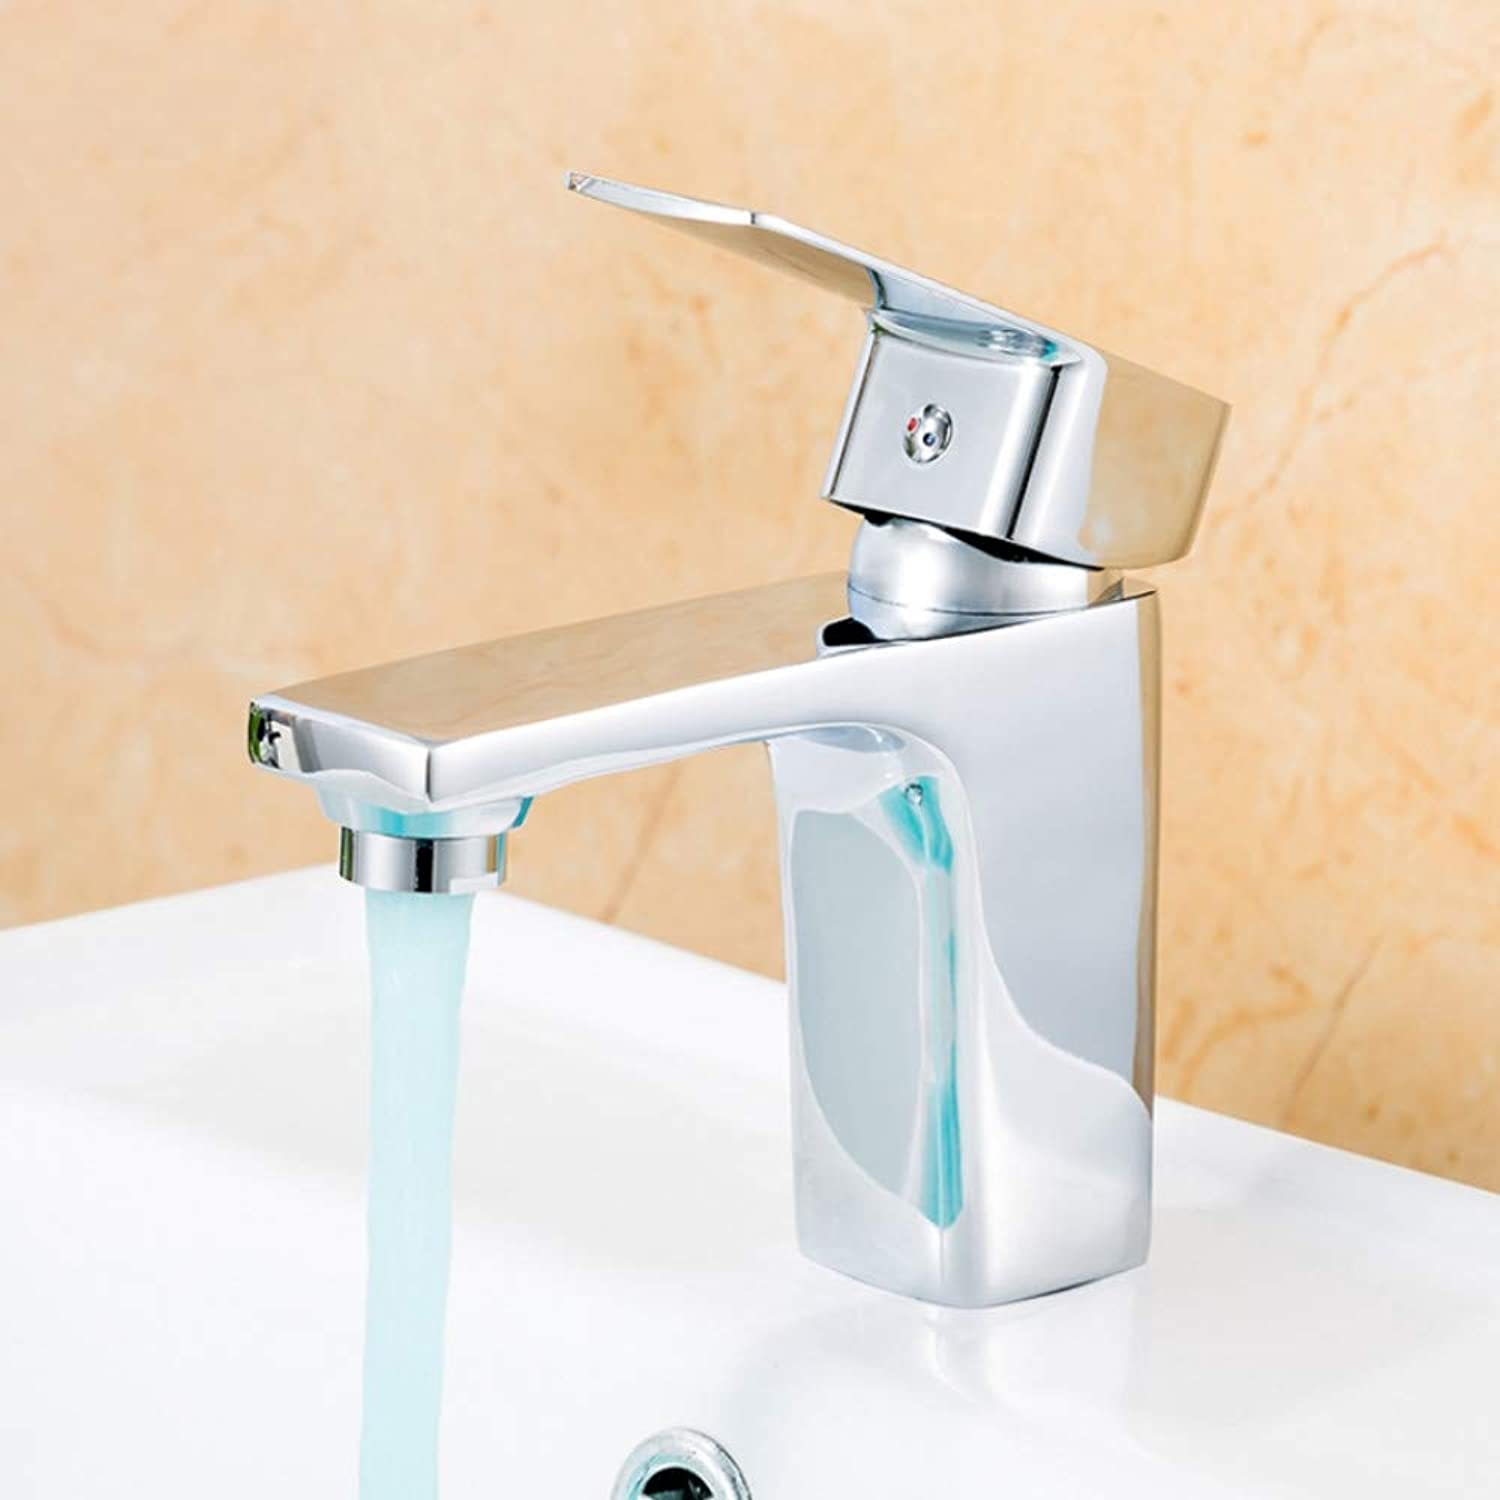 Ayhuir Basin Faucet Single Handle Bathroom Hot and Cold Water Mixer Taps Basin Faucet Kitchen Deck Mounted Chrome Basin Faucet